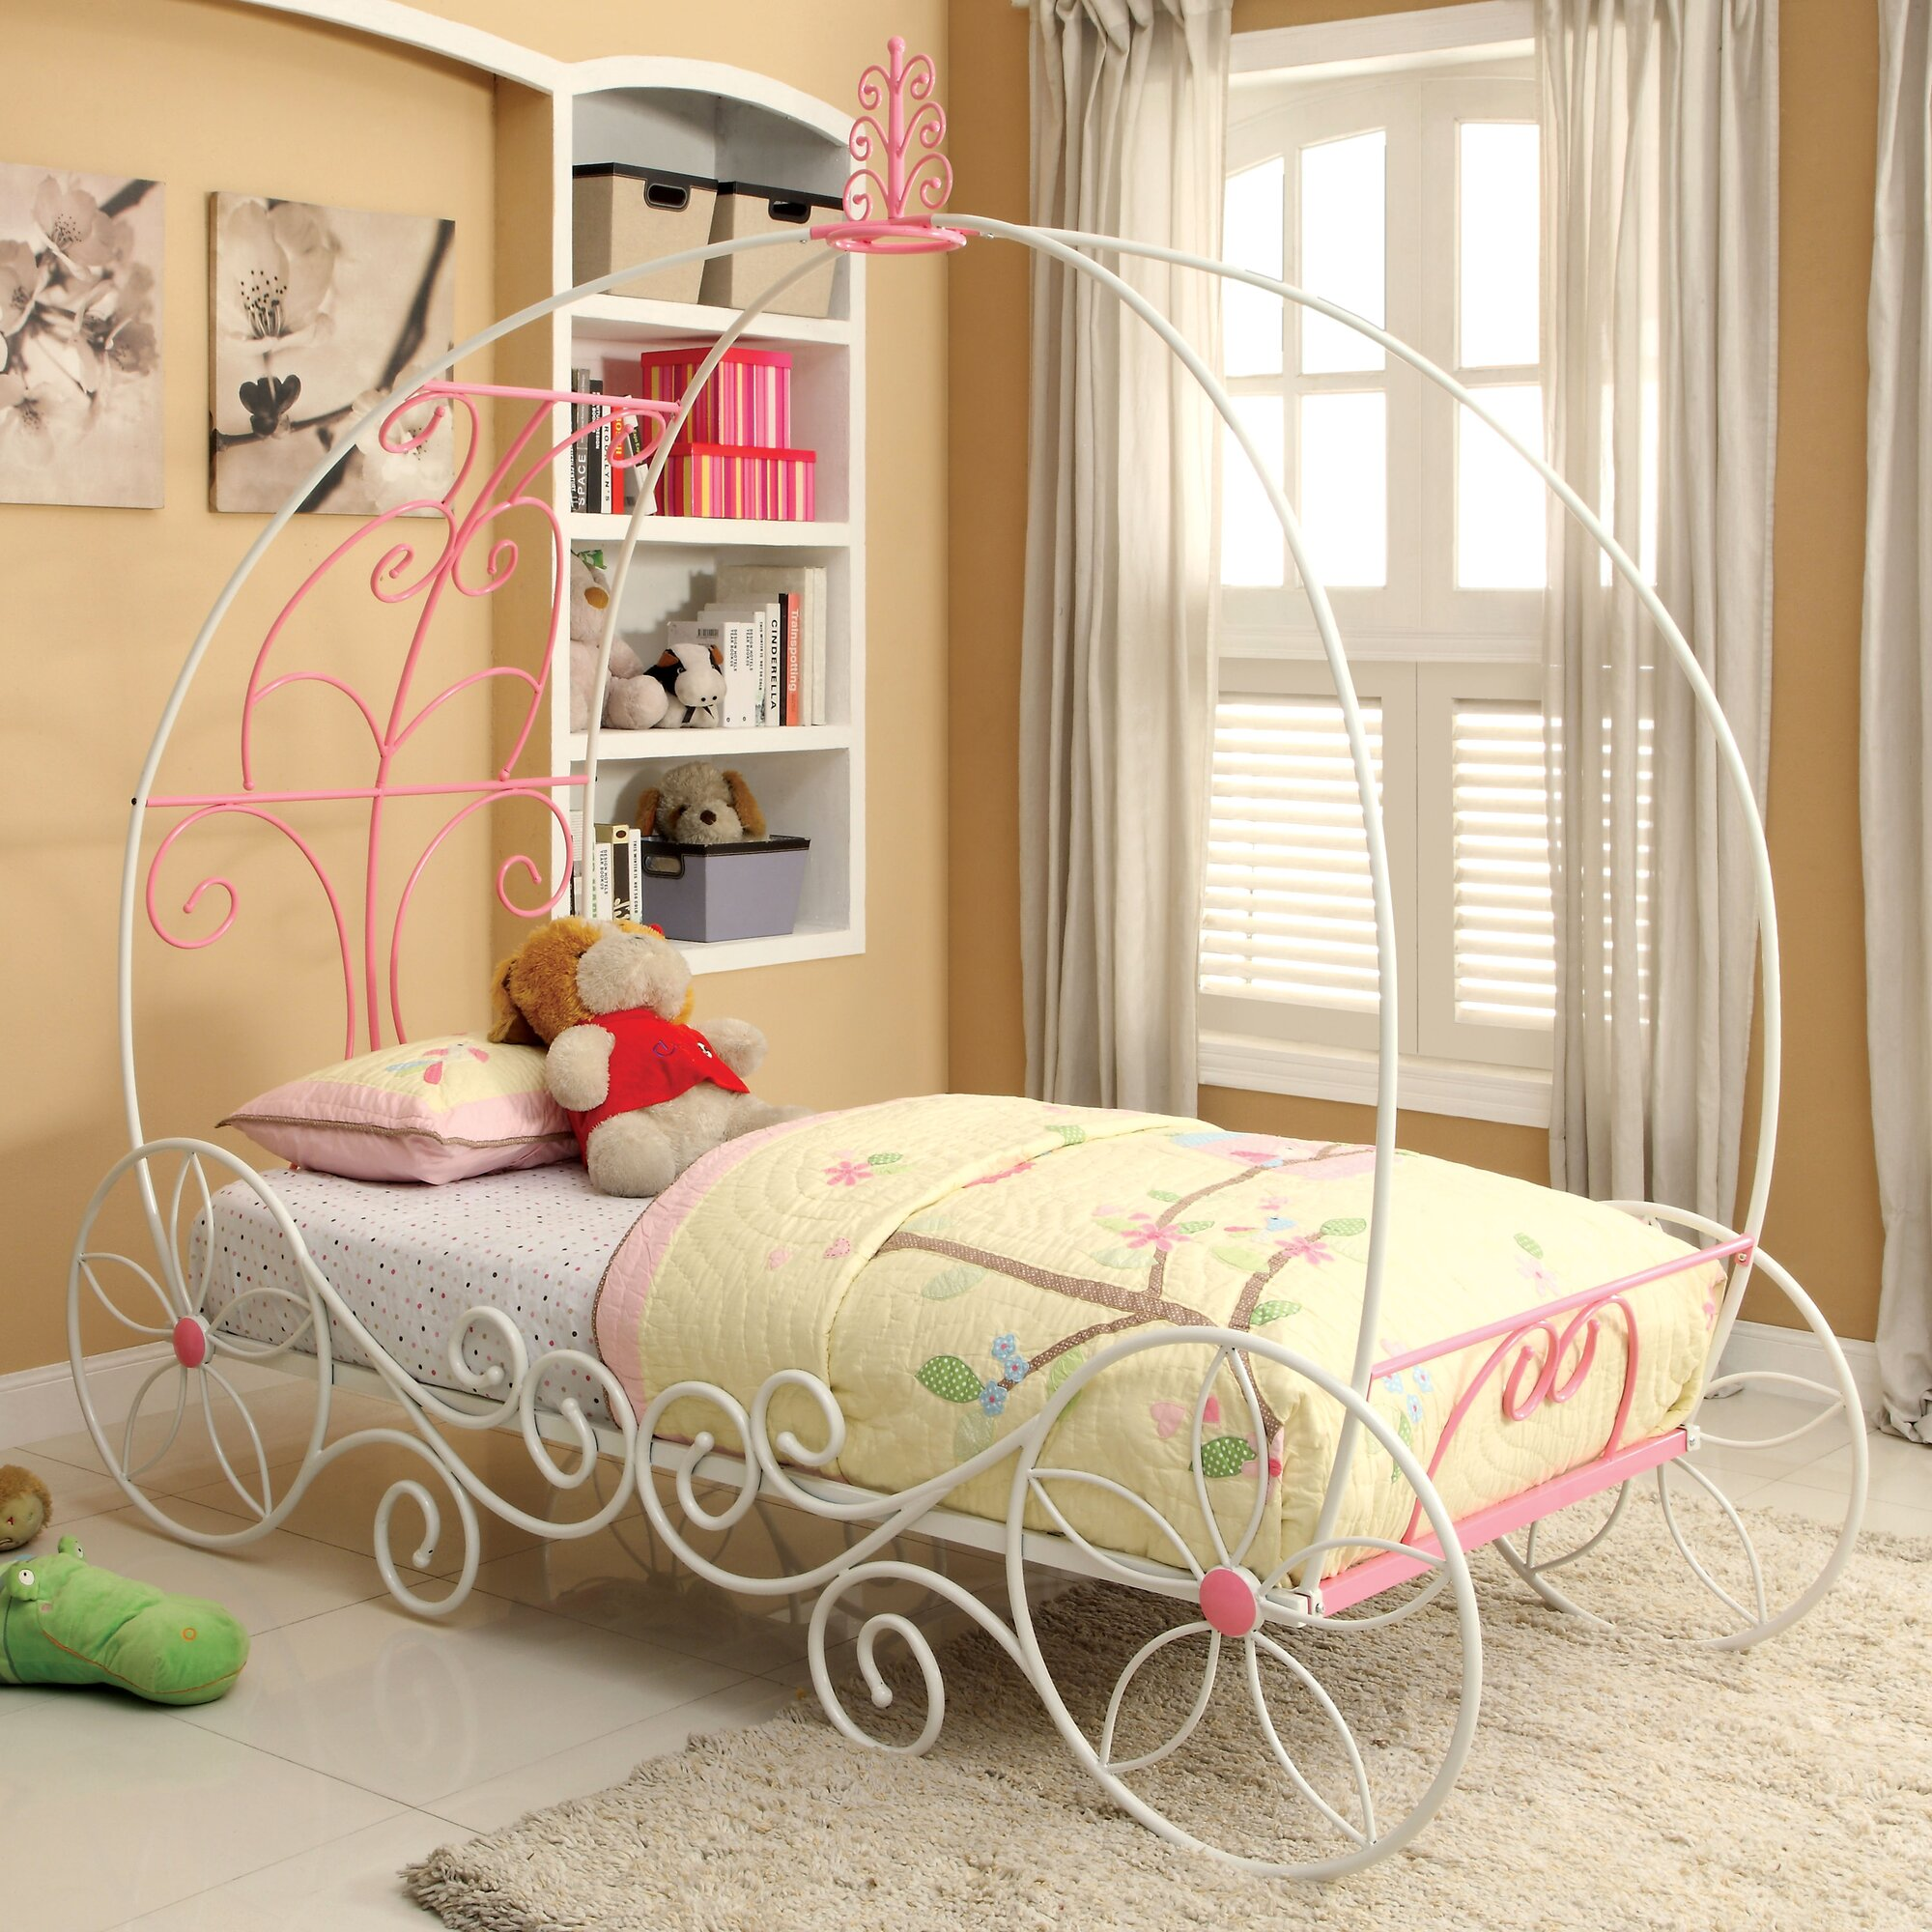 Hokku Designs Fairy Tale Twin Canopy Customizable Bedroom